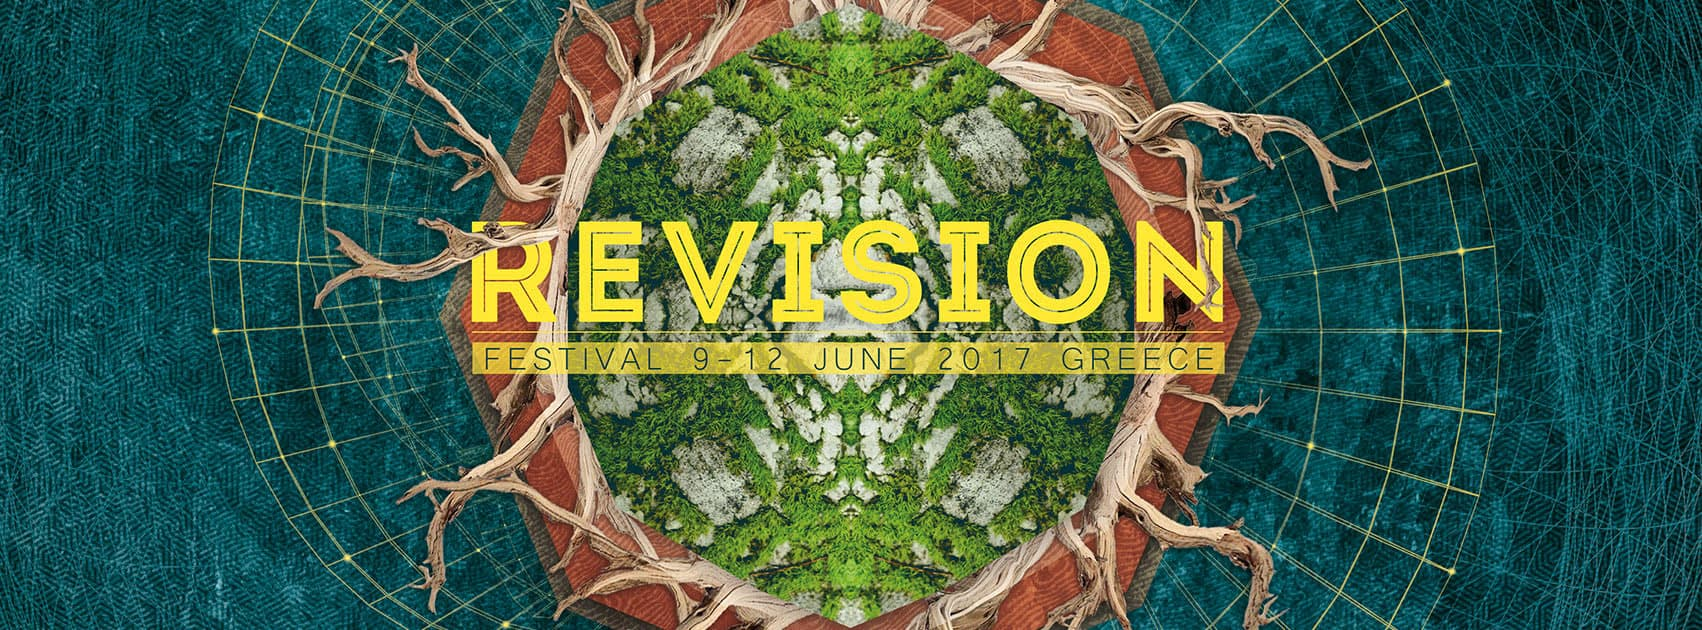 RevisionFestival 1st Edition 2017